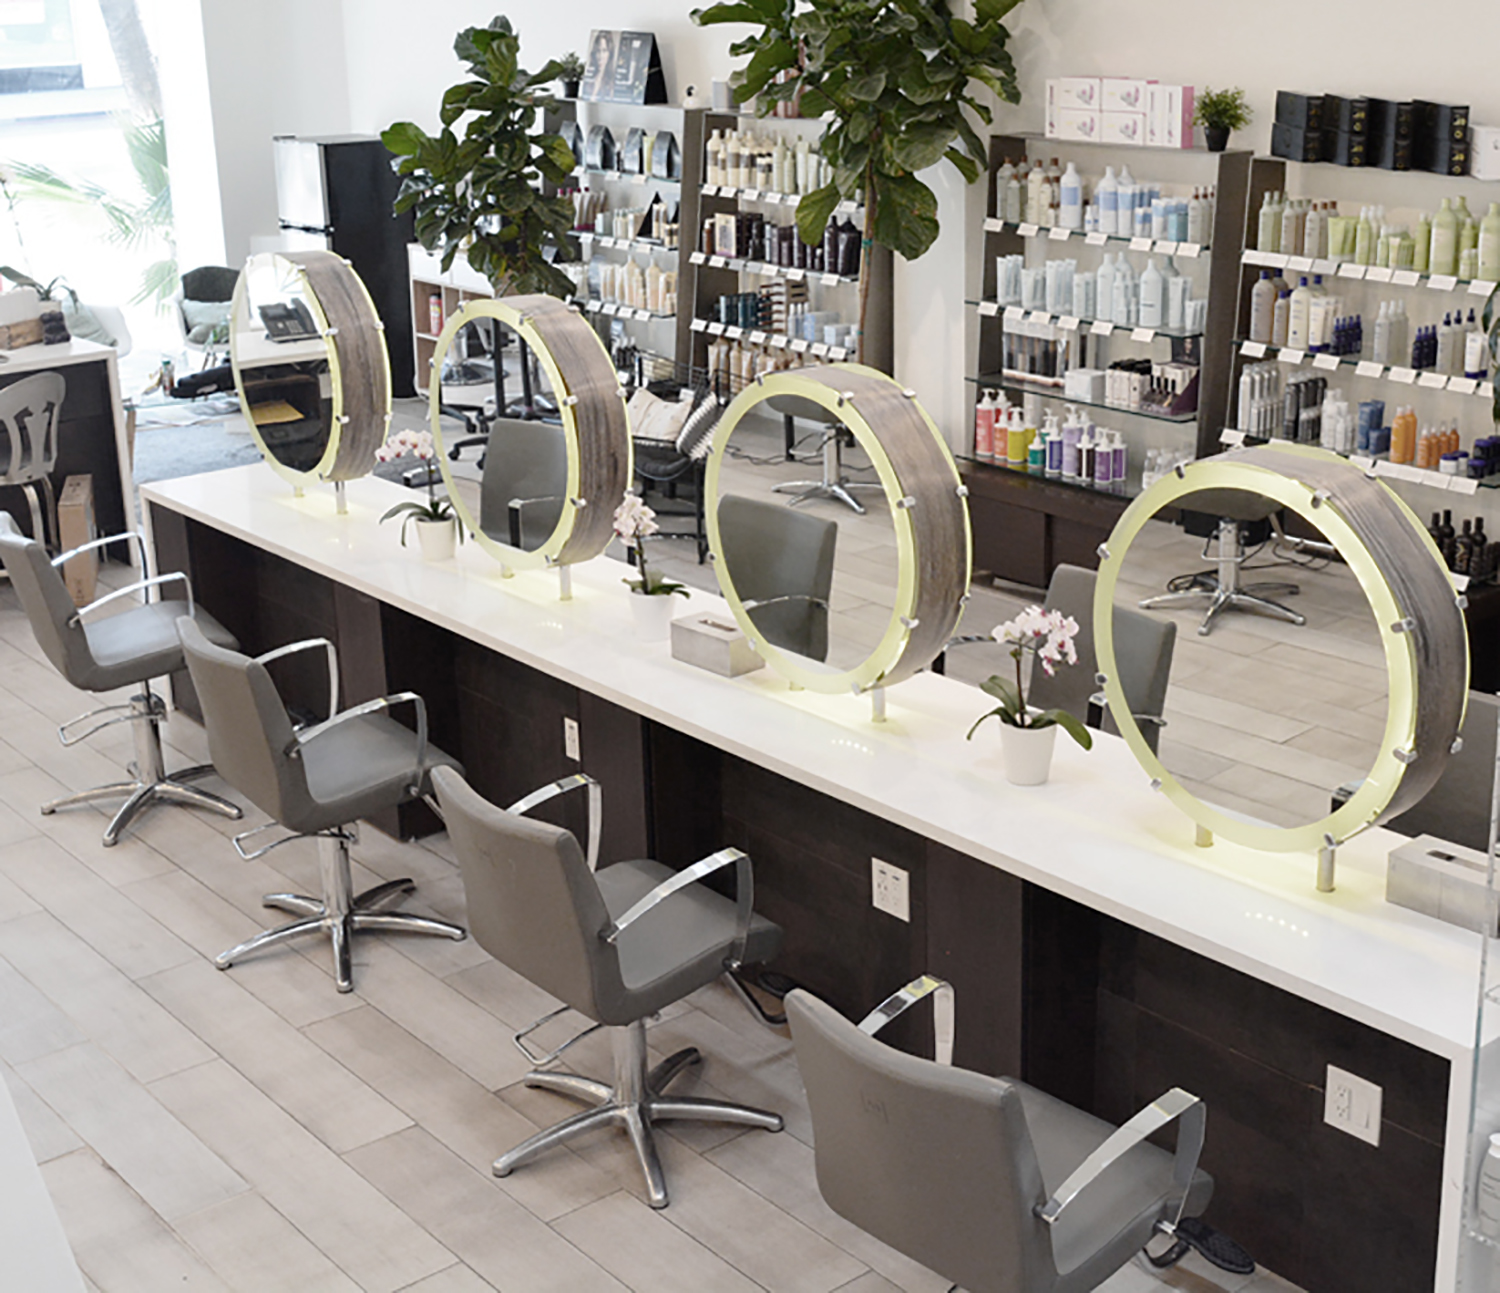 Downstairs there are 18 hair stations, while upstairs hosts an additional four hair stations, a nail station, a skincare service room, and a VIP service room.